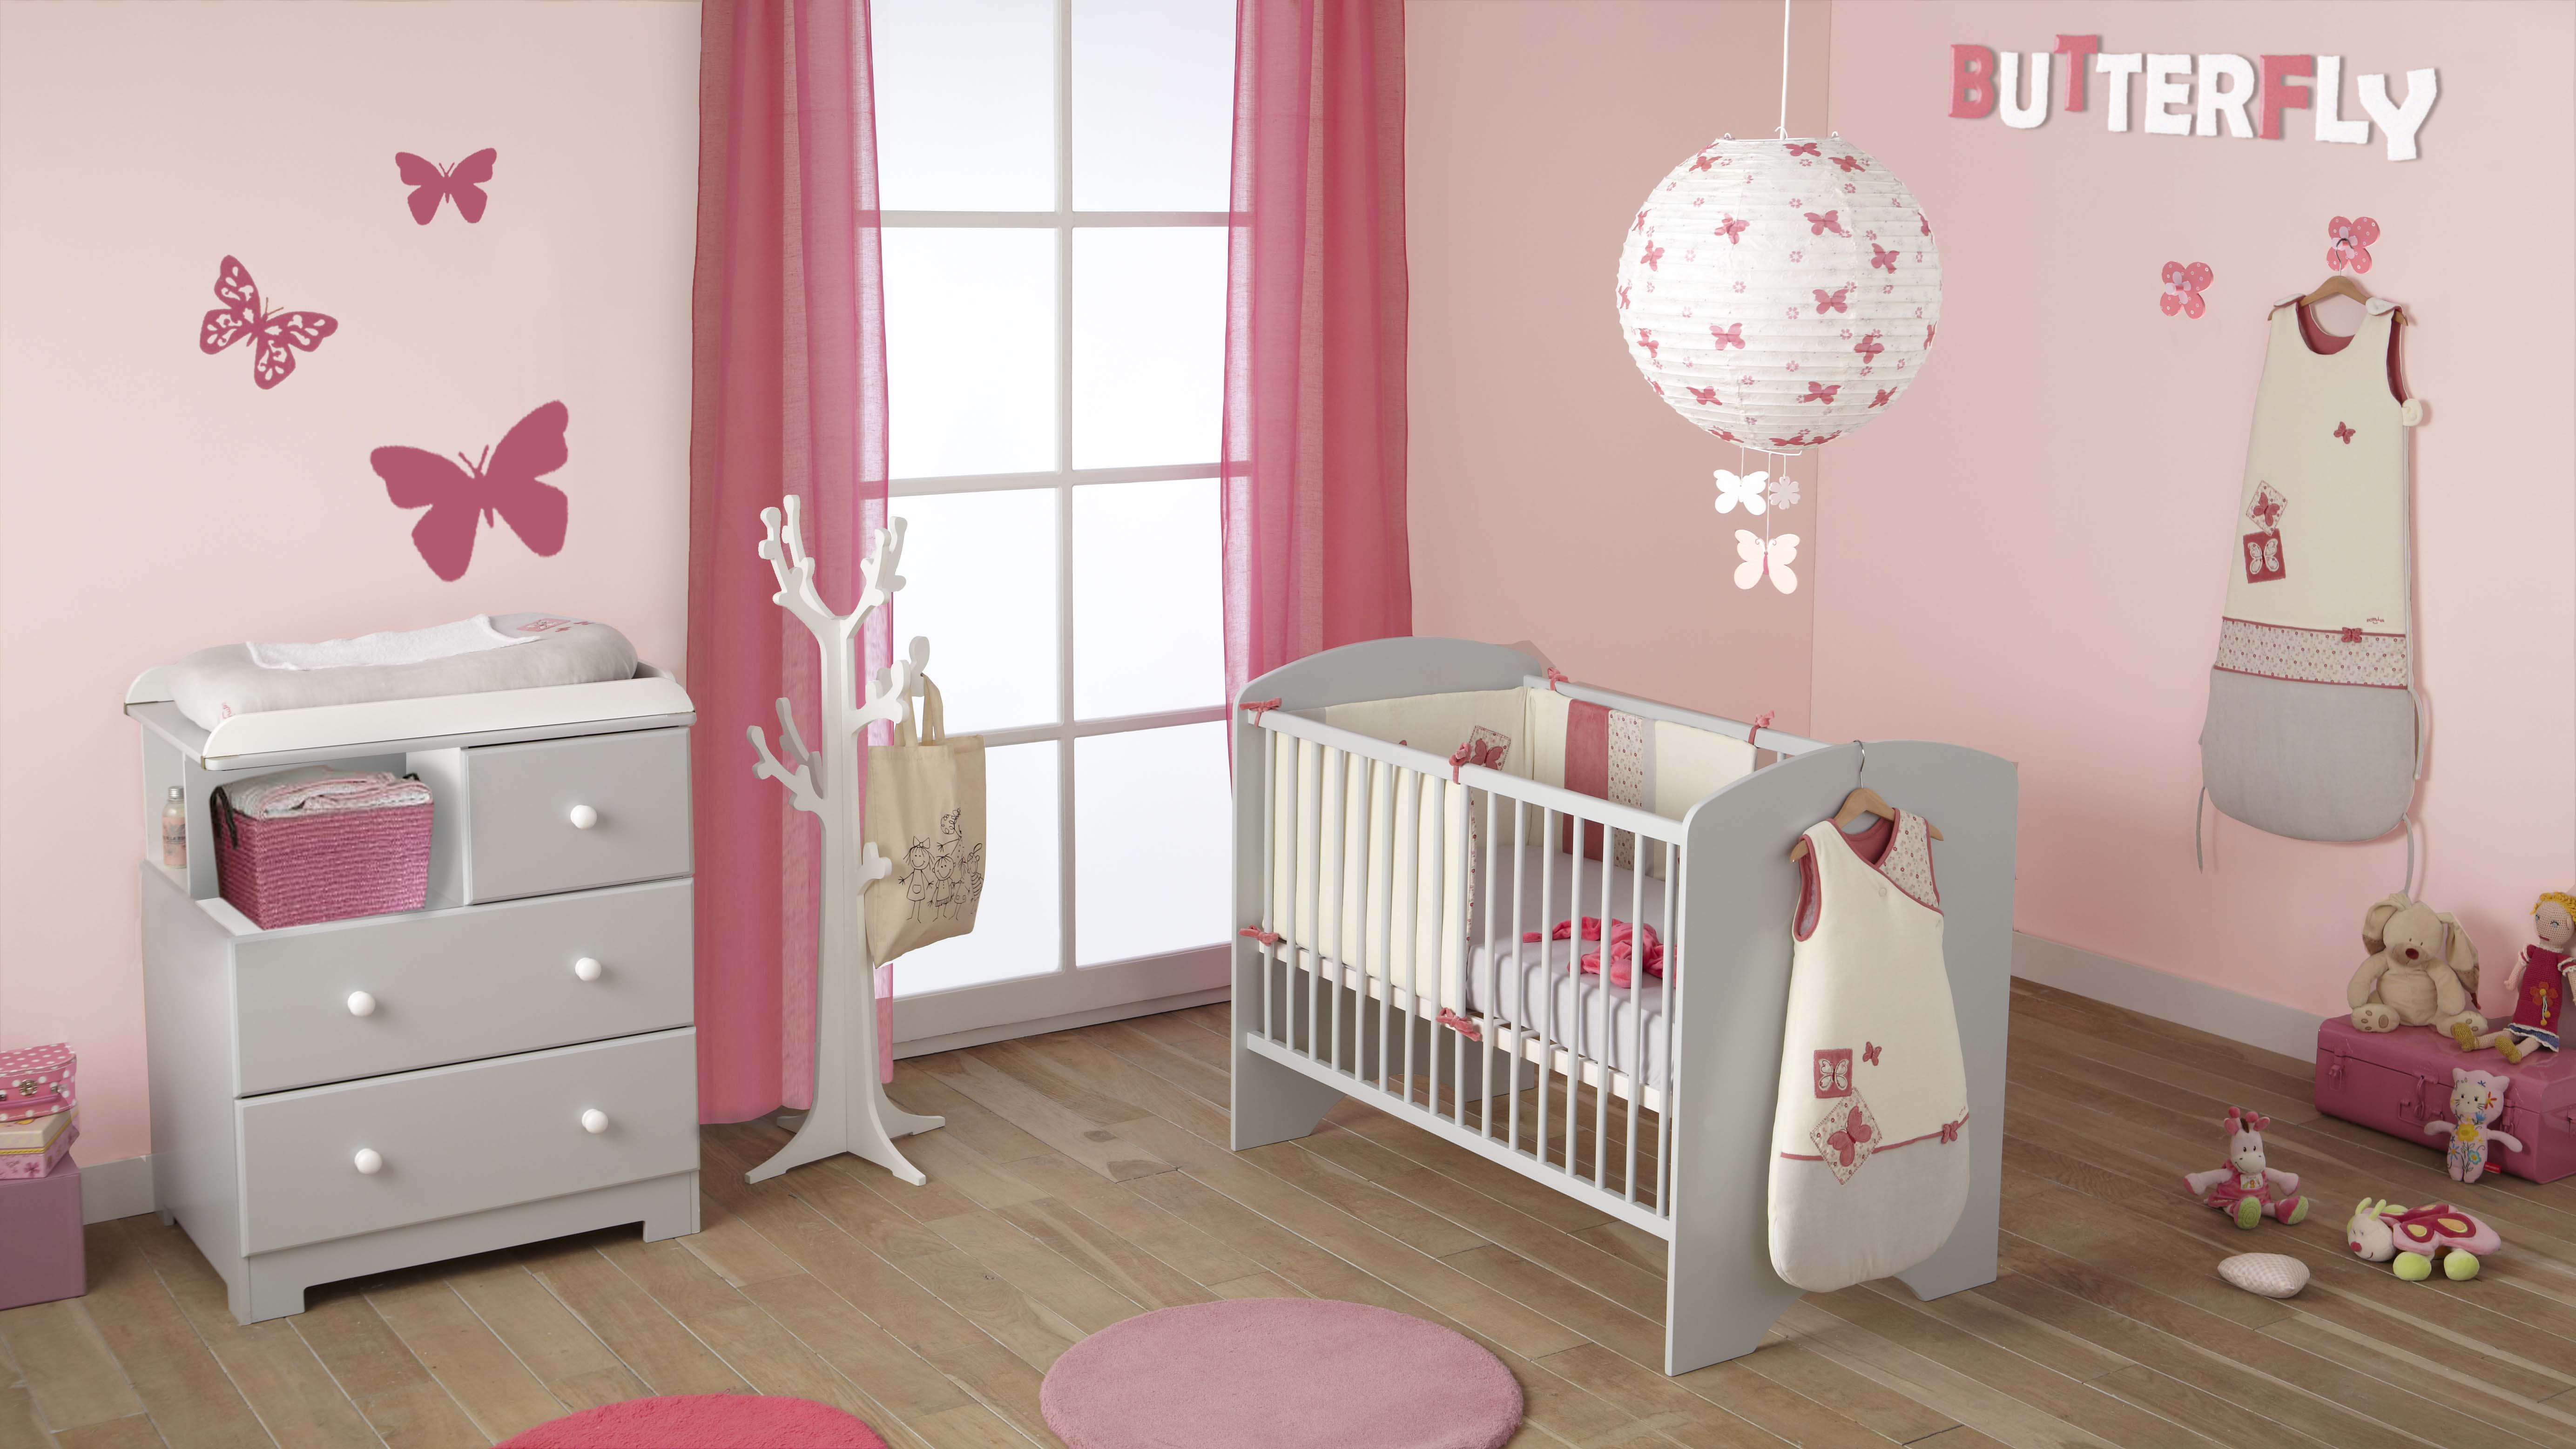 Comment pr parer une belle chambre pour son b b for Photo de chambre de bebe fille